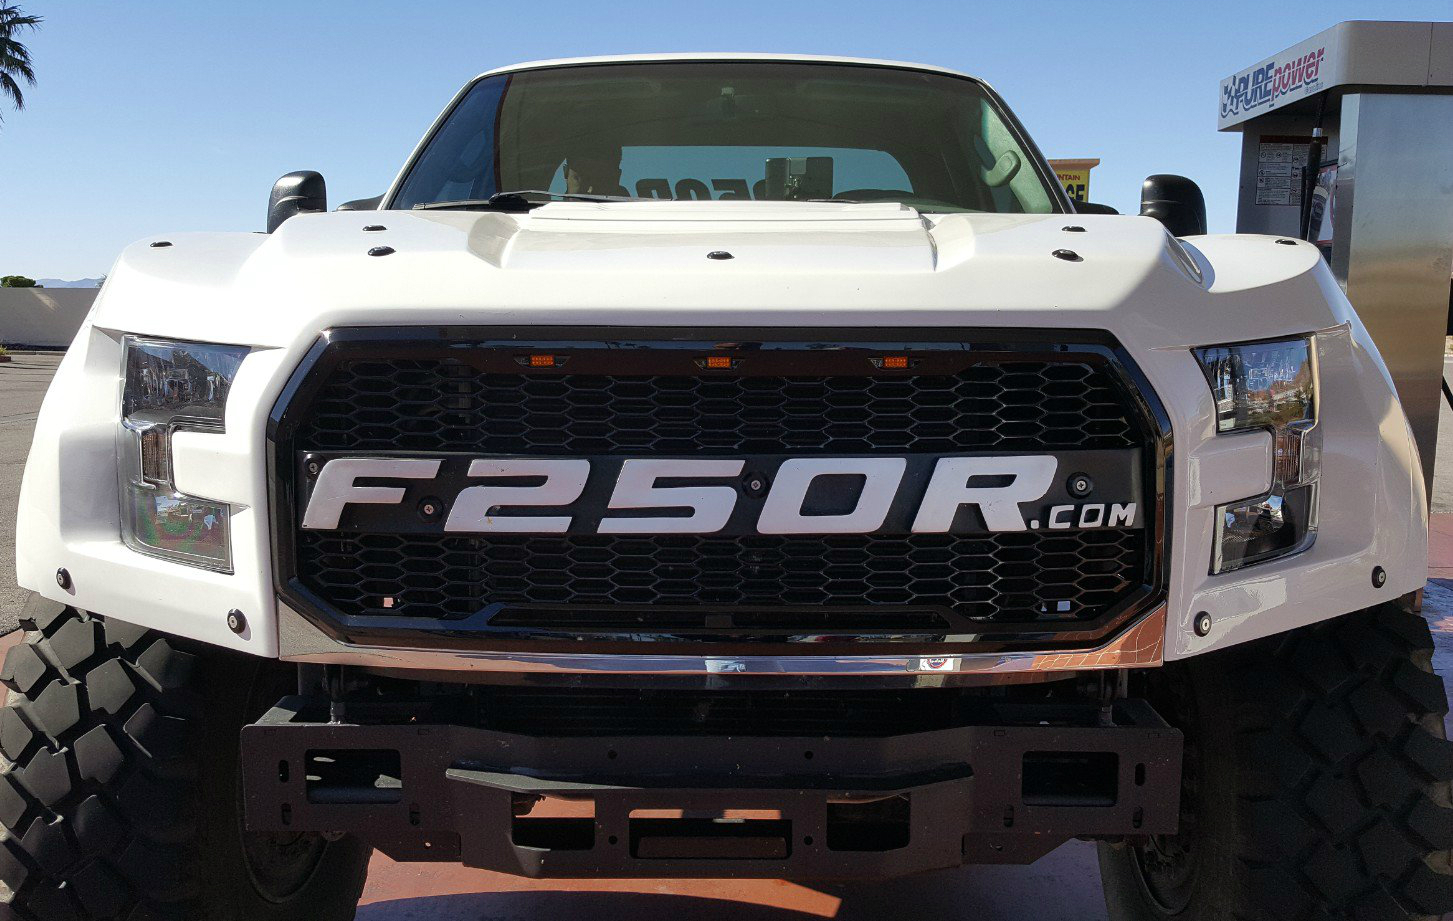 The F250R Super & Mega Raptors Are Giant Raptor Lookalikes Without The Offroad Performance